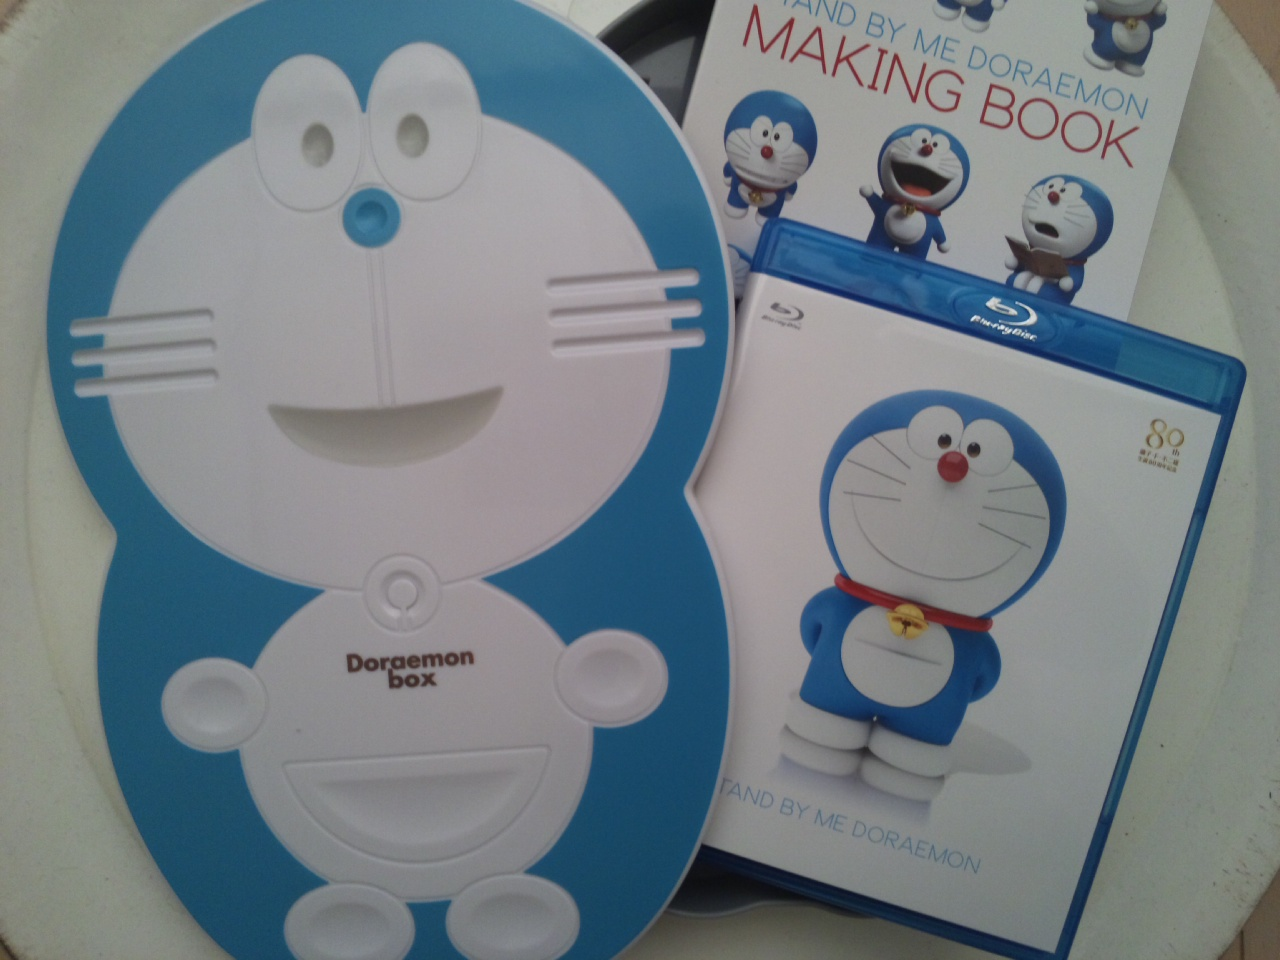 STAND BY ME DORAEMON !